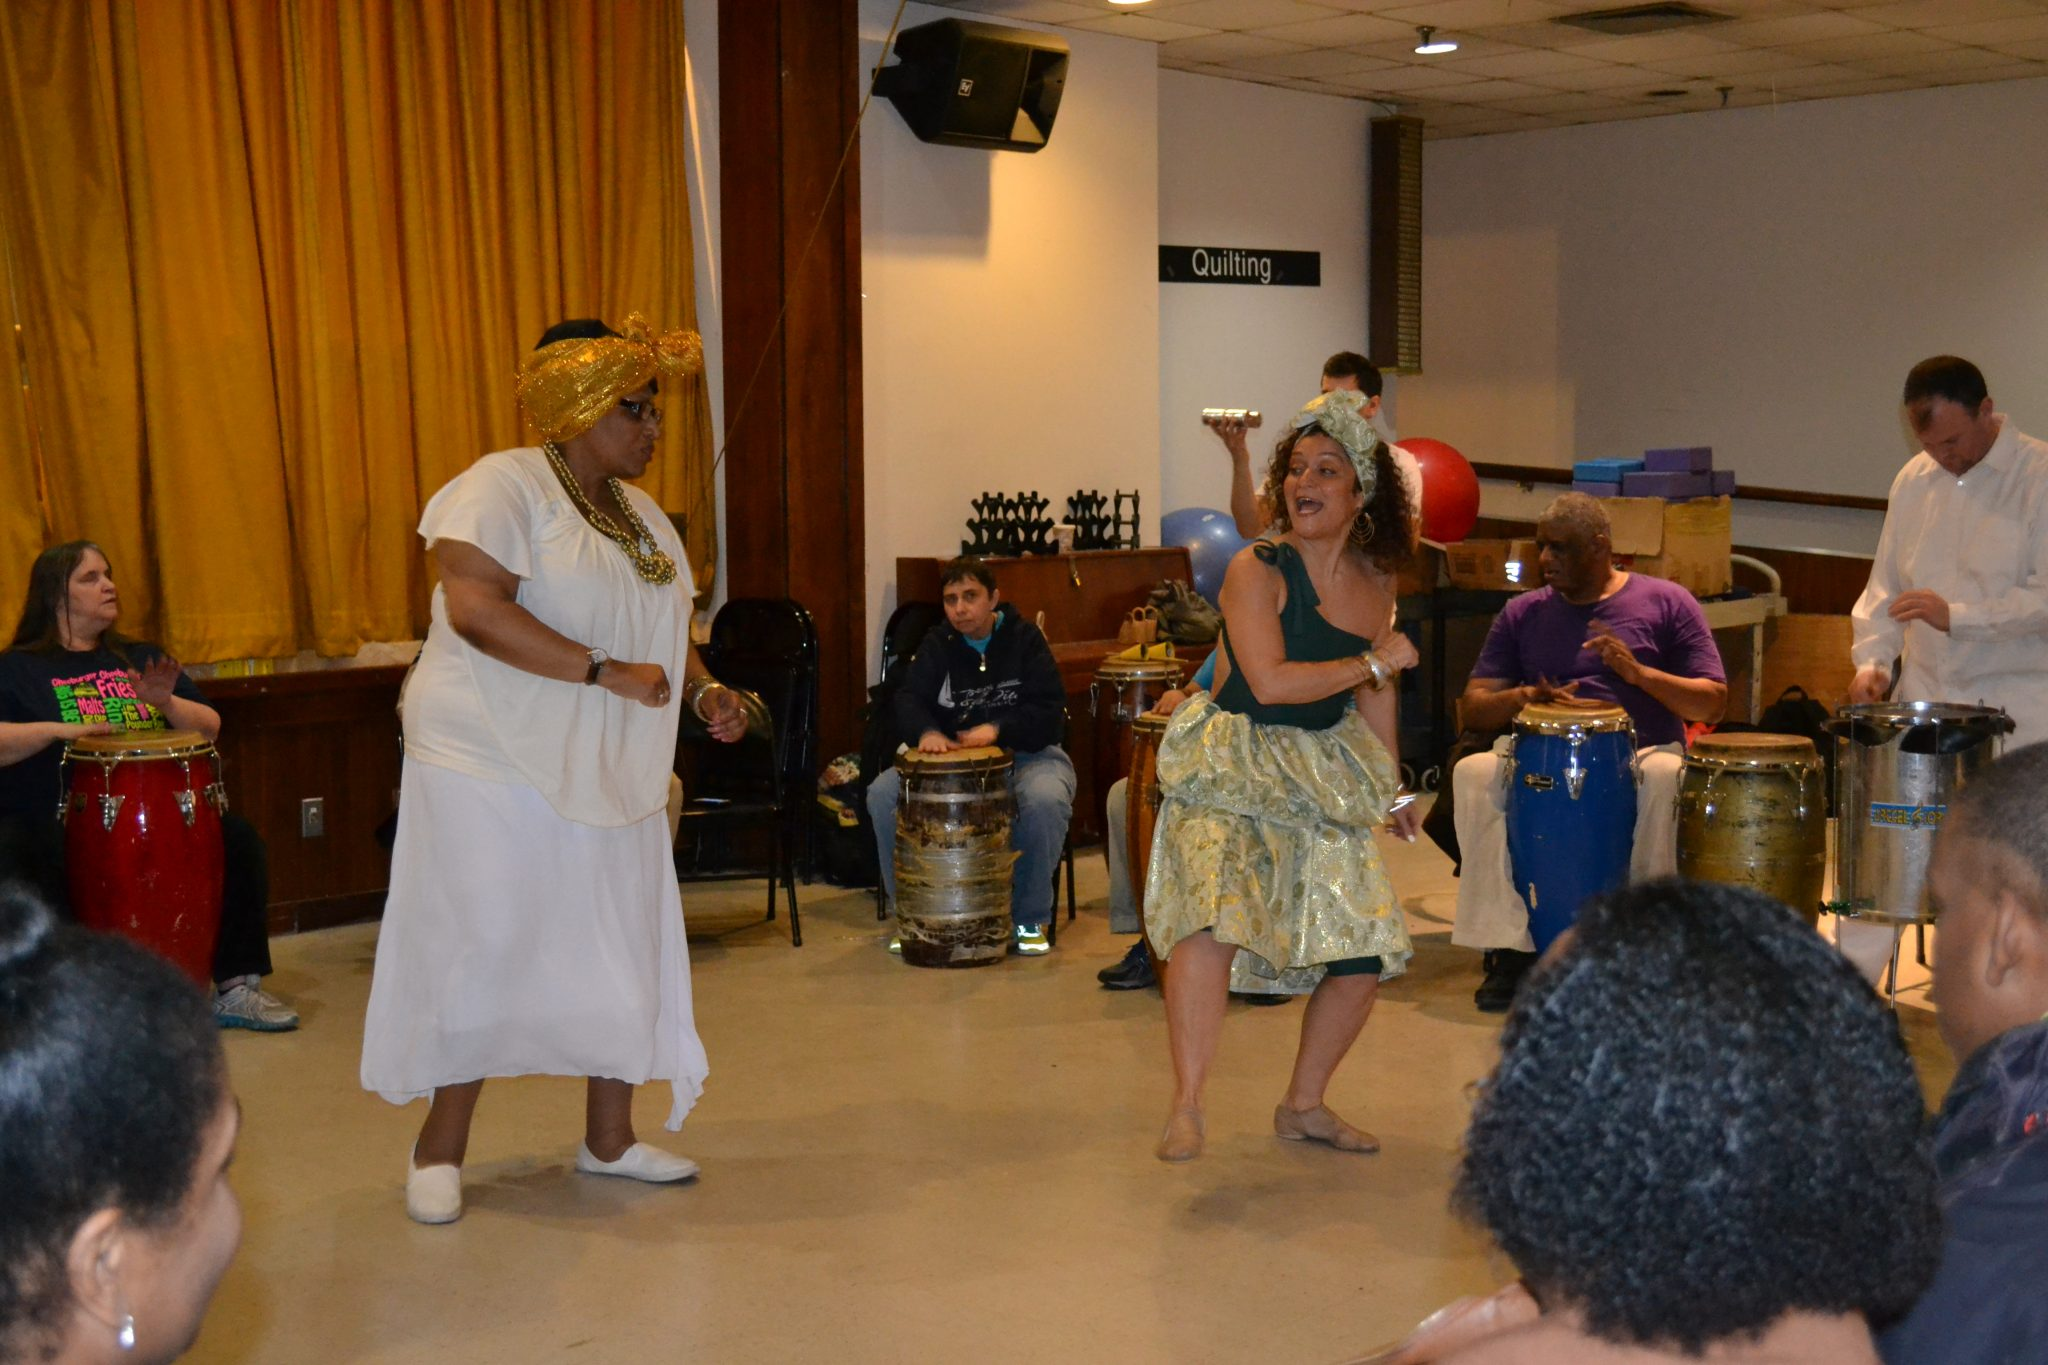 Two women dancing in the middle of a bongo drum circle - Brazillian Drumming and Dance with Turtle Bay Music School